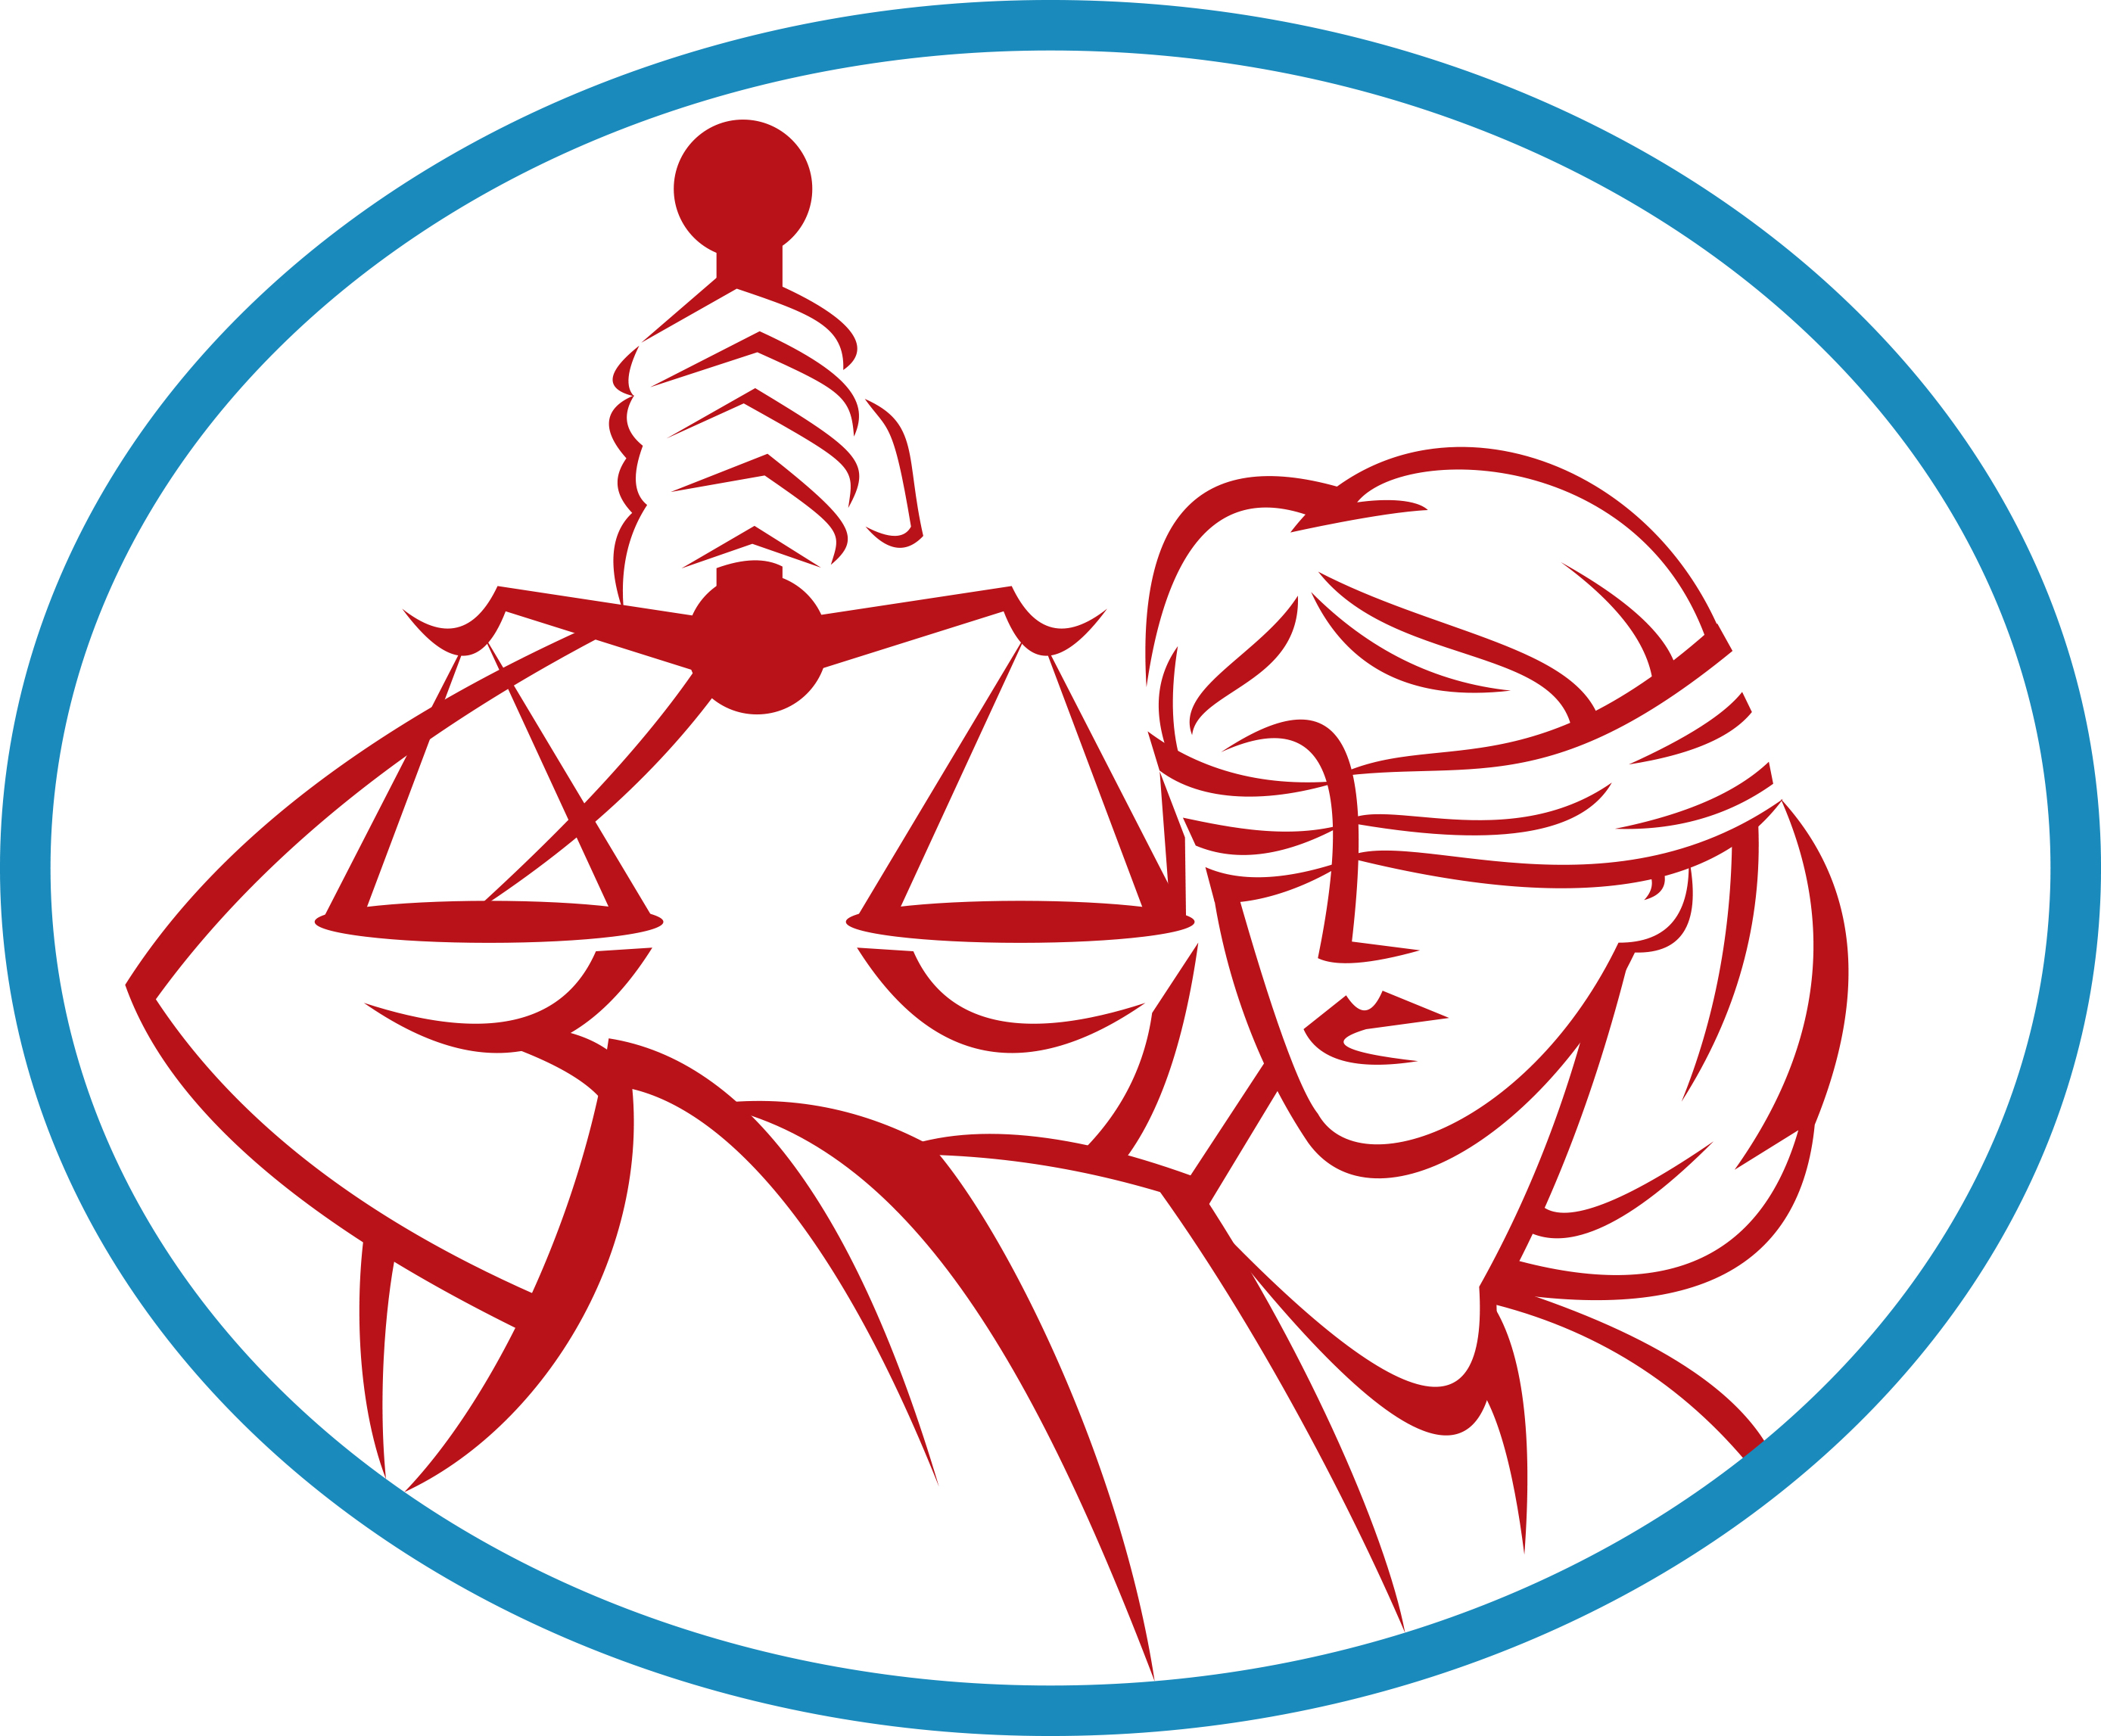 the symbol for justice features a woman wearing a blindfold to illustrate that the law should be app The symbol for justice features a woman wearing a blindfold illustrating that the law should be applied the same way regardless of who the parties are does the ucc rule seem to contradict this which approach do you.